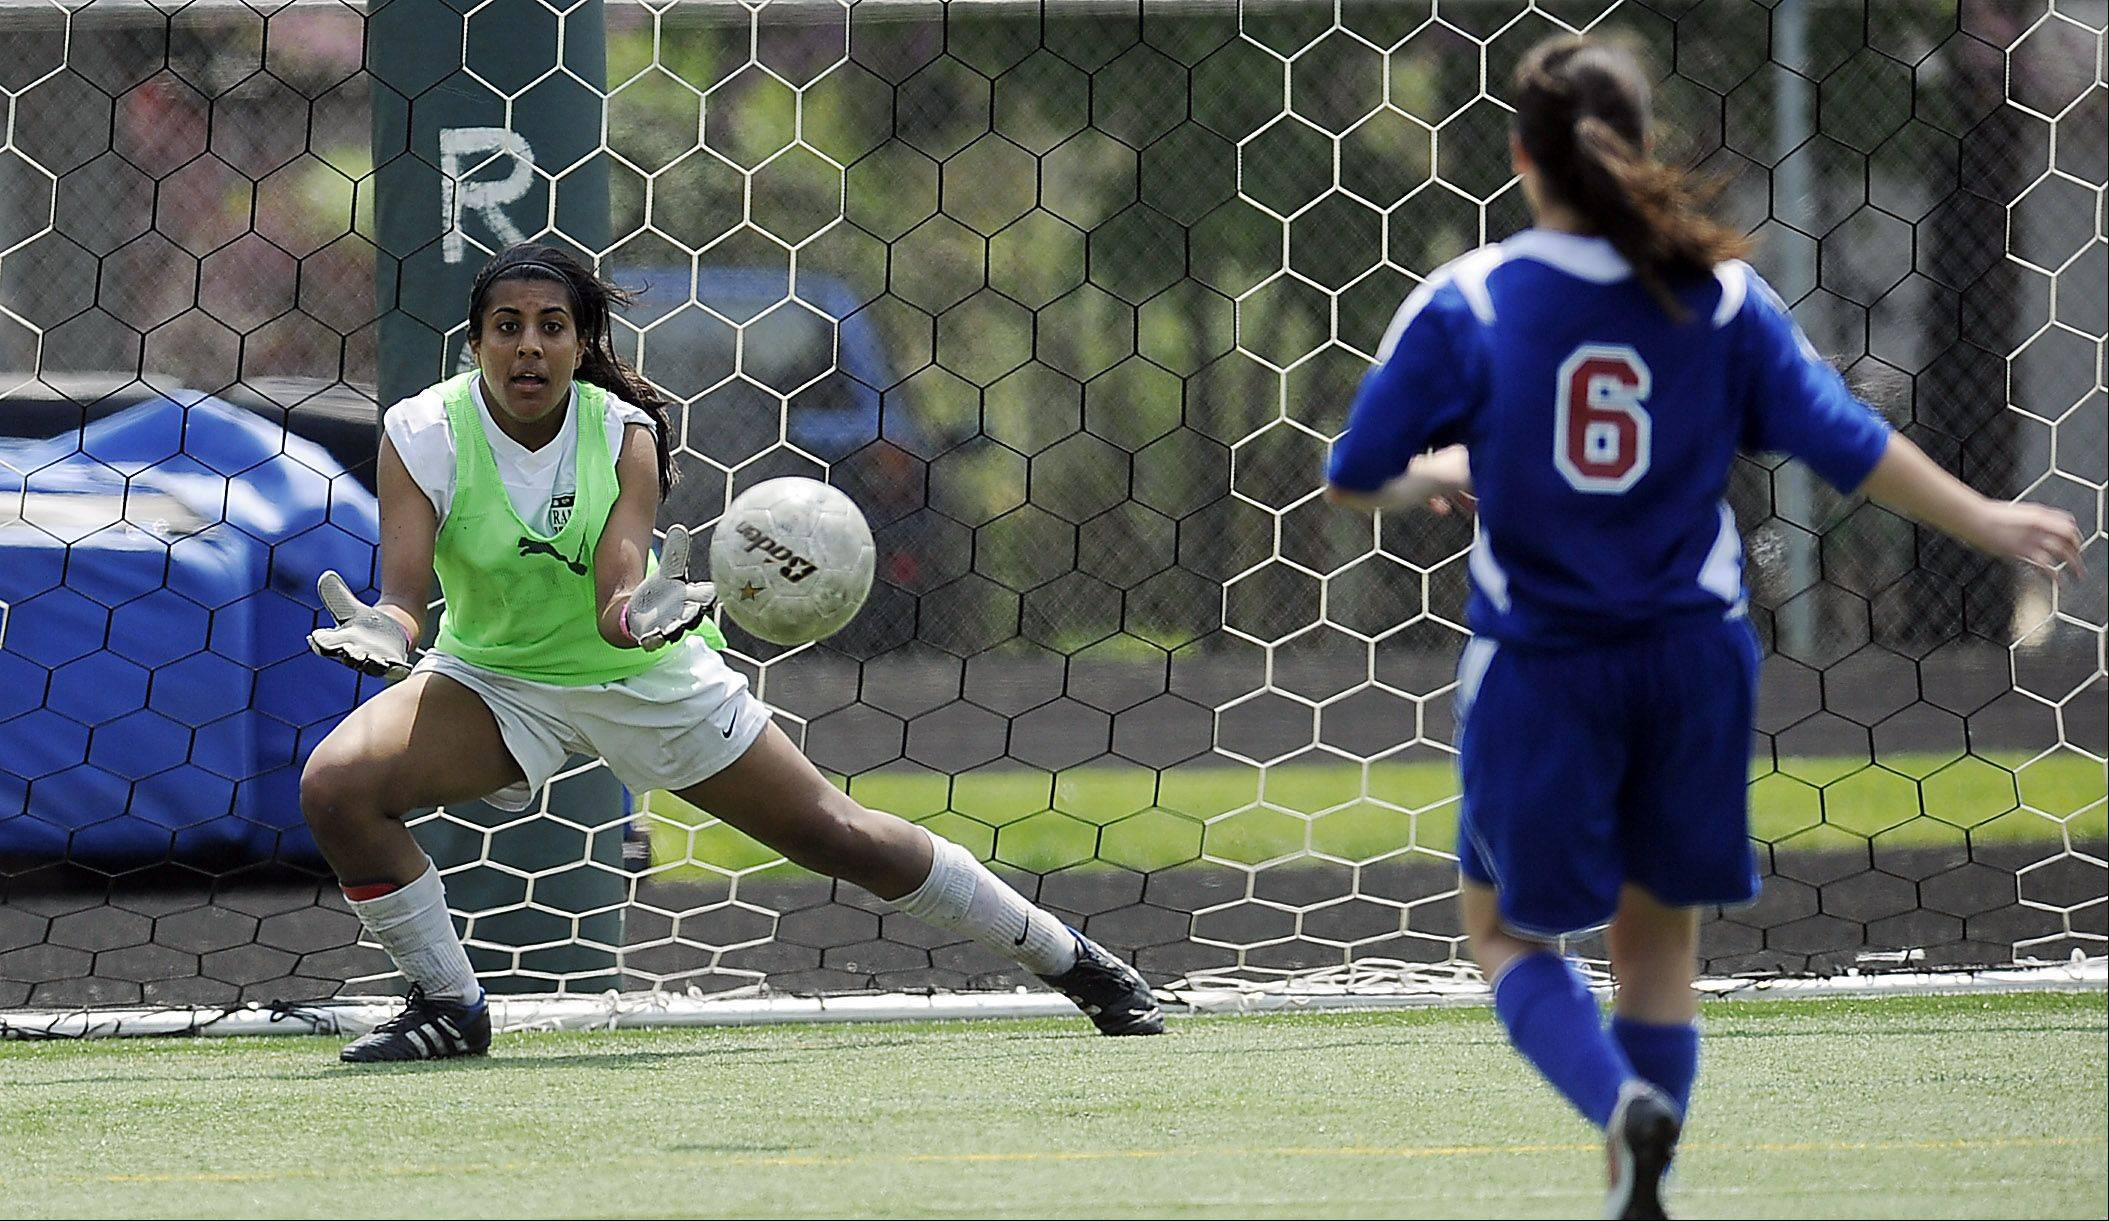 Grayslake Central goalie Kajal Chokshi prepares to block a shot by Lakes� Jessica Cipolla in a shootout victory in the Class 2A regional championship play Saturday.